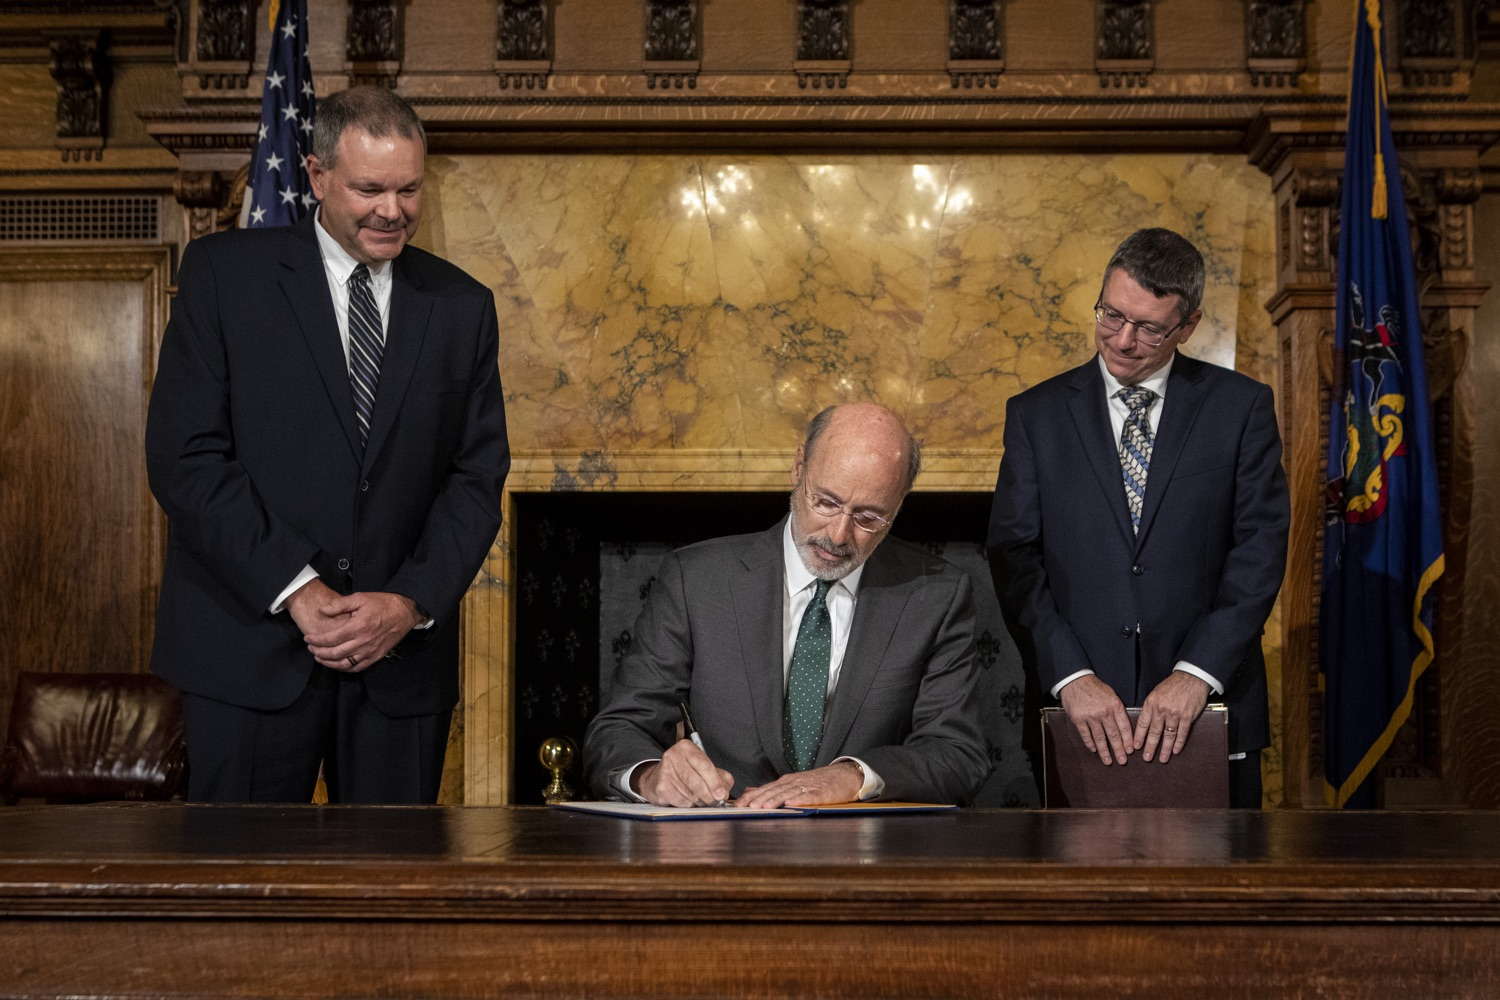 "<a href=""http://filesource.abacast.com/commonwealthofpa/photo/17469_GOV_ClimateChange_DE_001.jpg"" target=""_blank"">⇣ Download Photo<br></a>Governor Wolf Takes Executive Action to Combat Climate Change, Carbon Emissions"